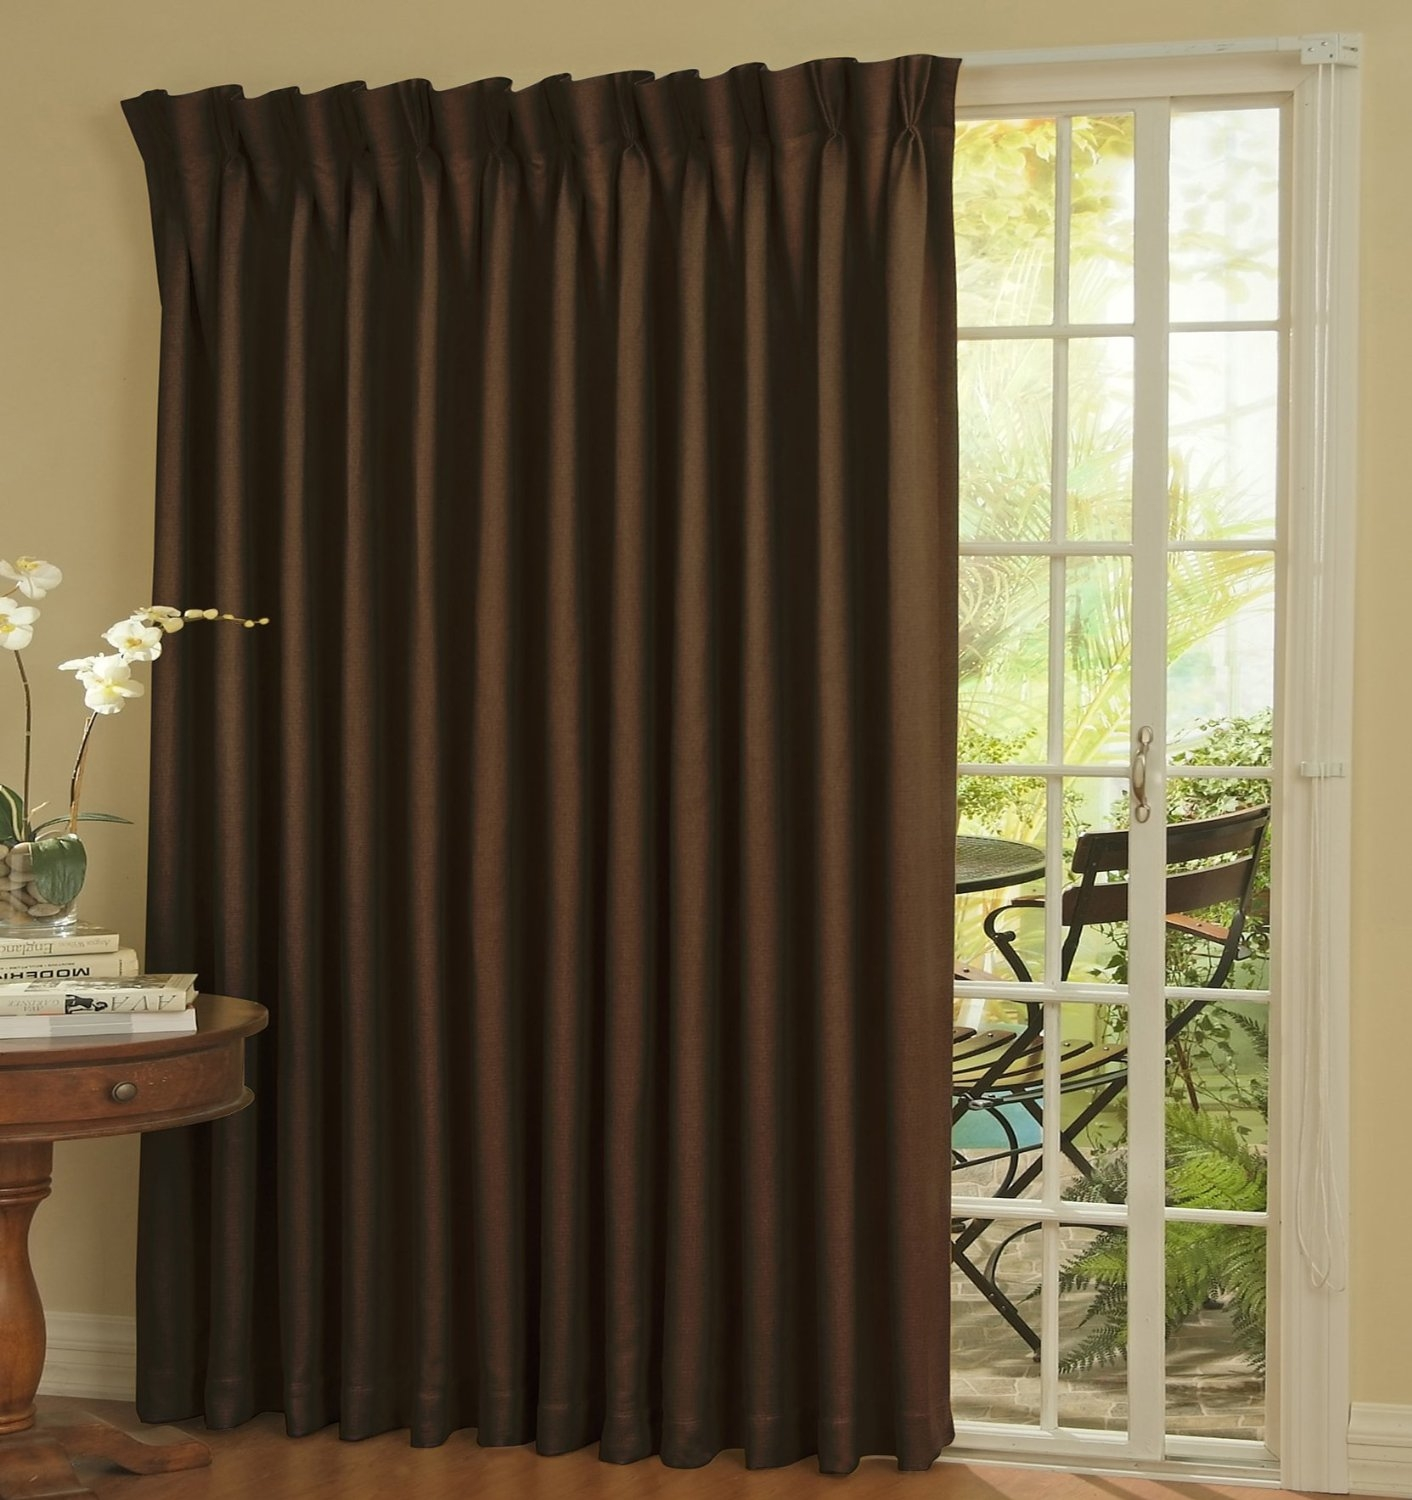 Fantastic Art Pick Me Up Window Drapes And Curtains Miraculous Pertaining To Inexpensive Curtains For Large Windows (Image 11 of 25)